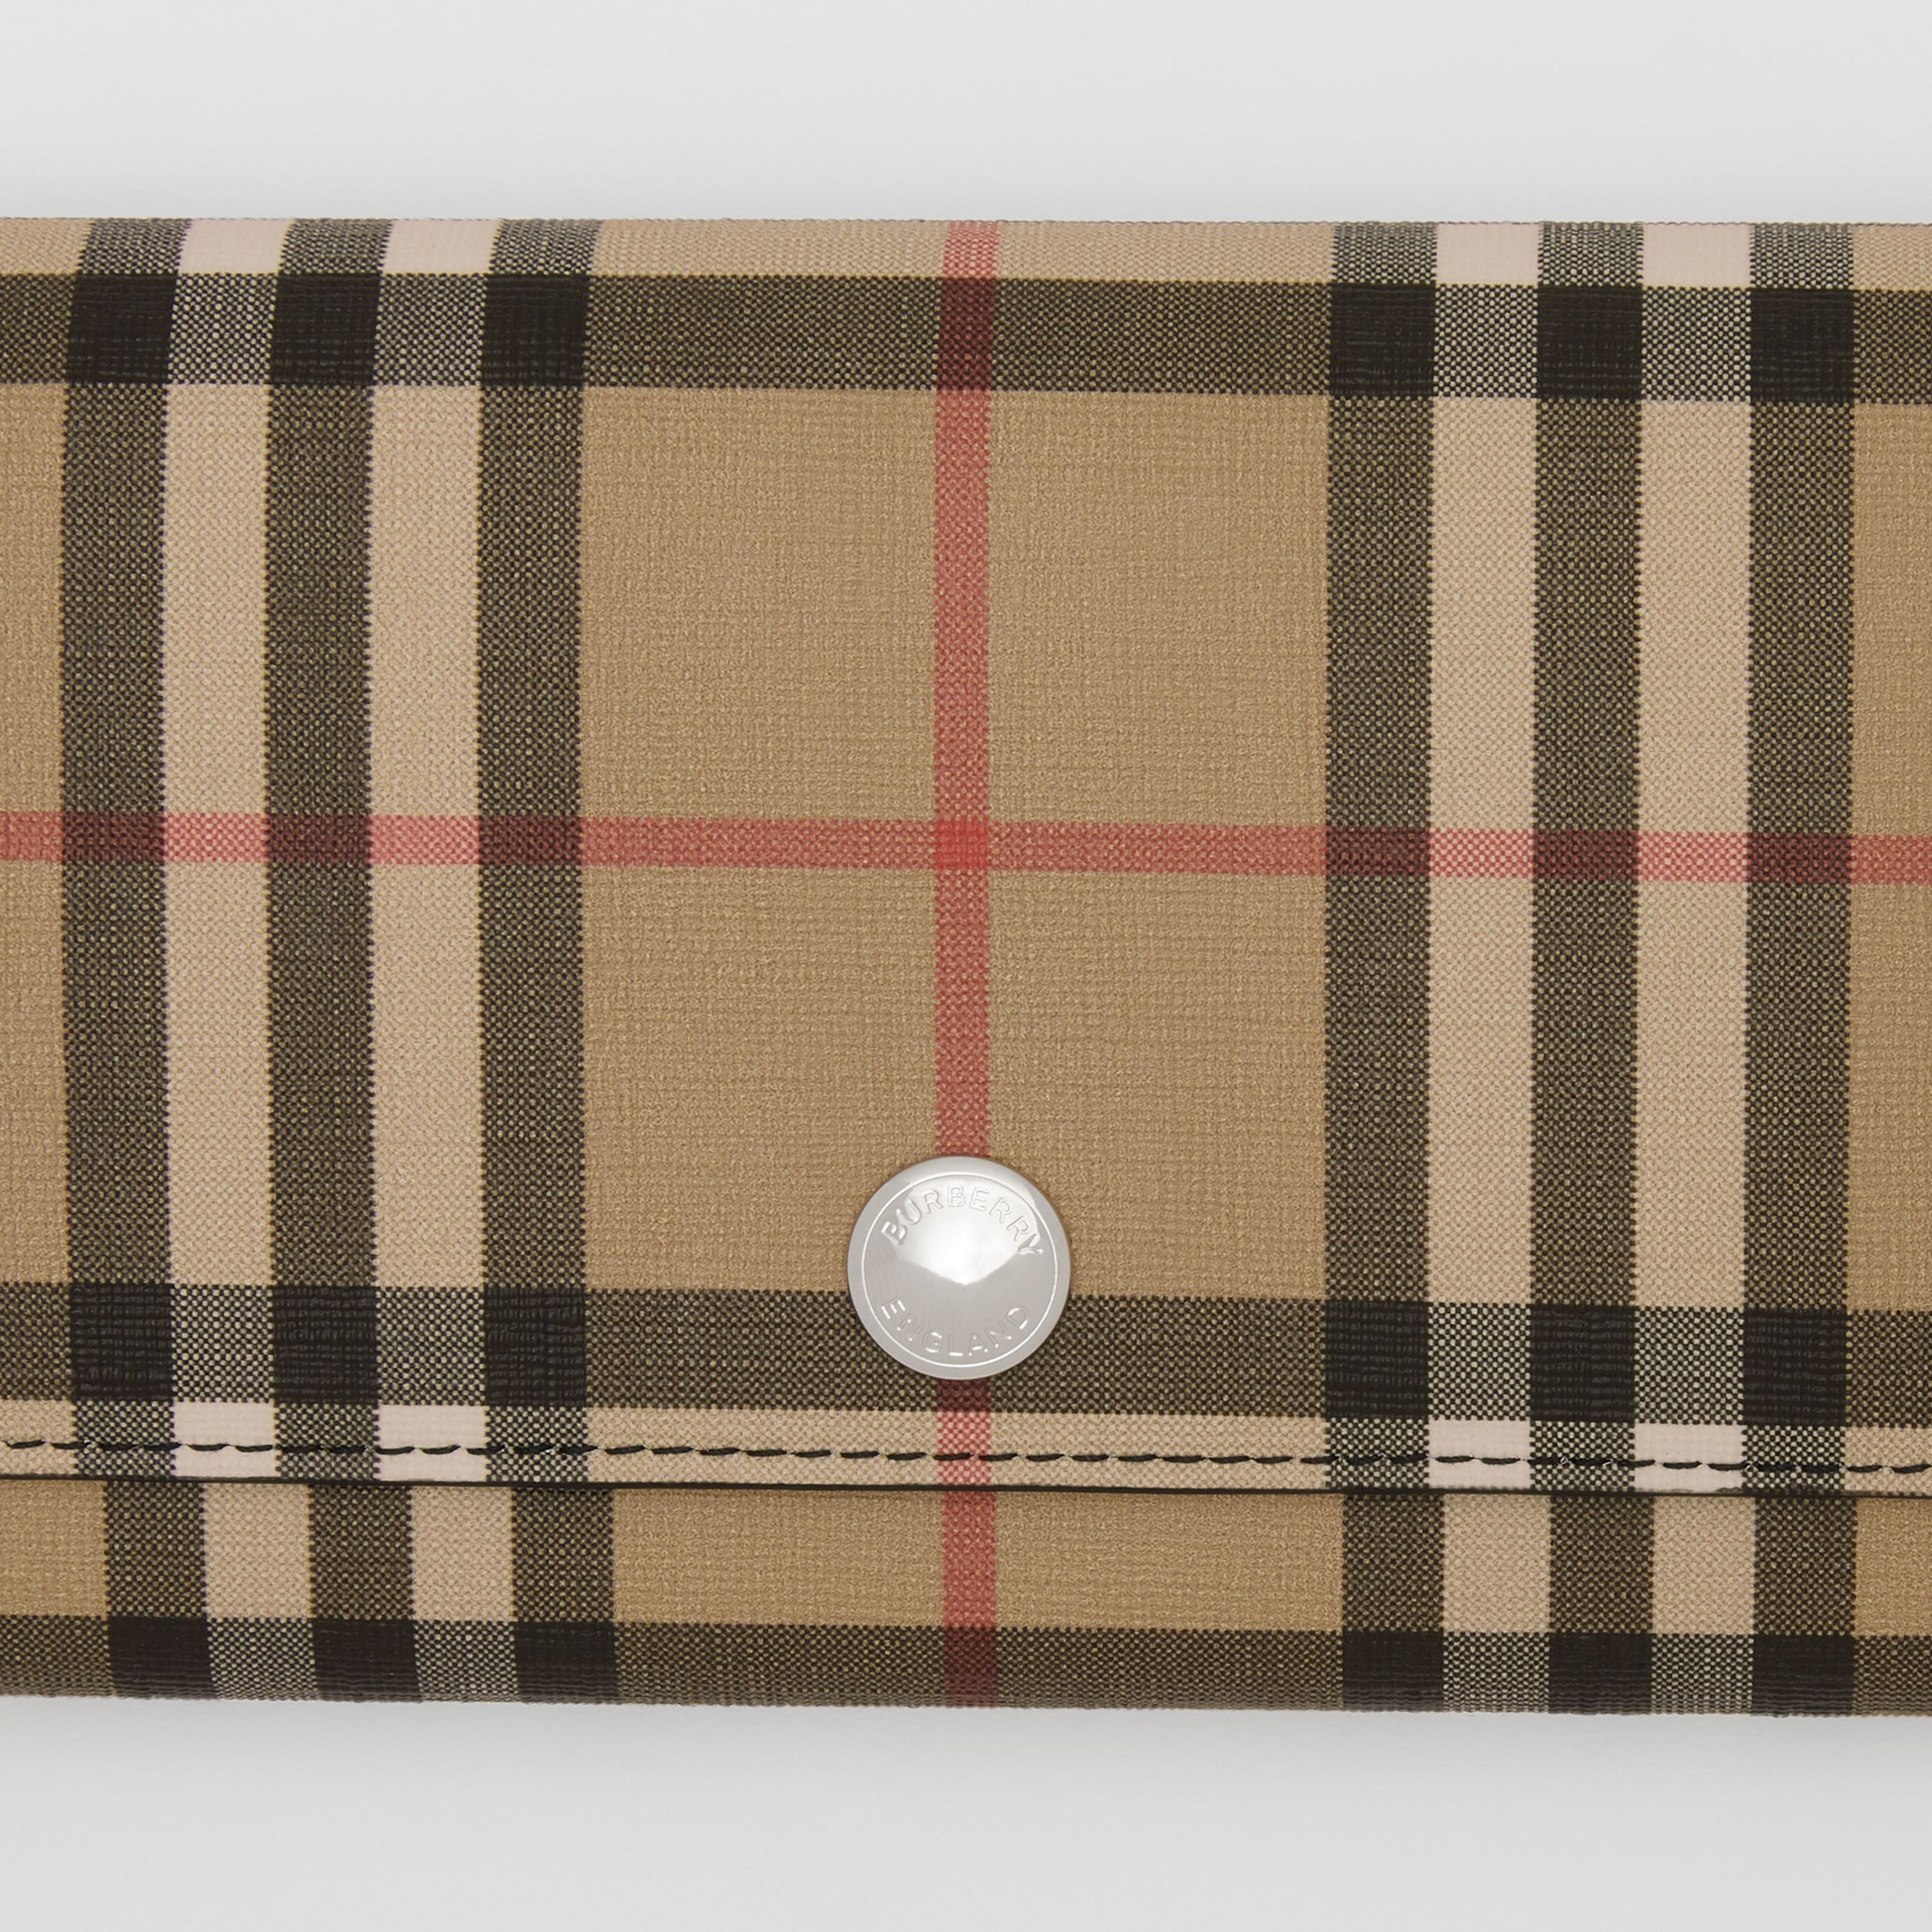 Vintage Check E-canvas Continental Wallet in Black - Women | Burberry Australia - 2